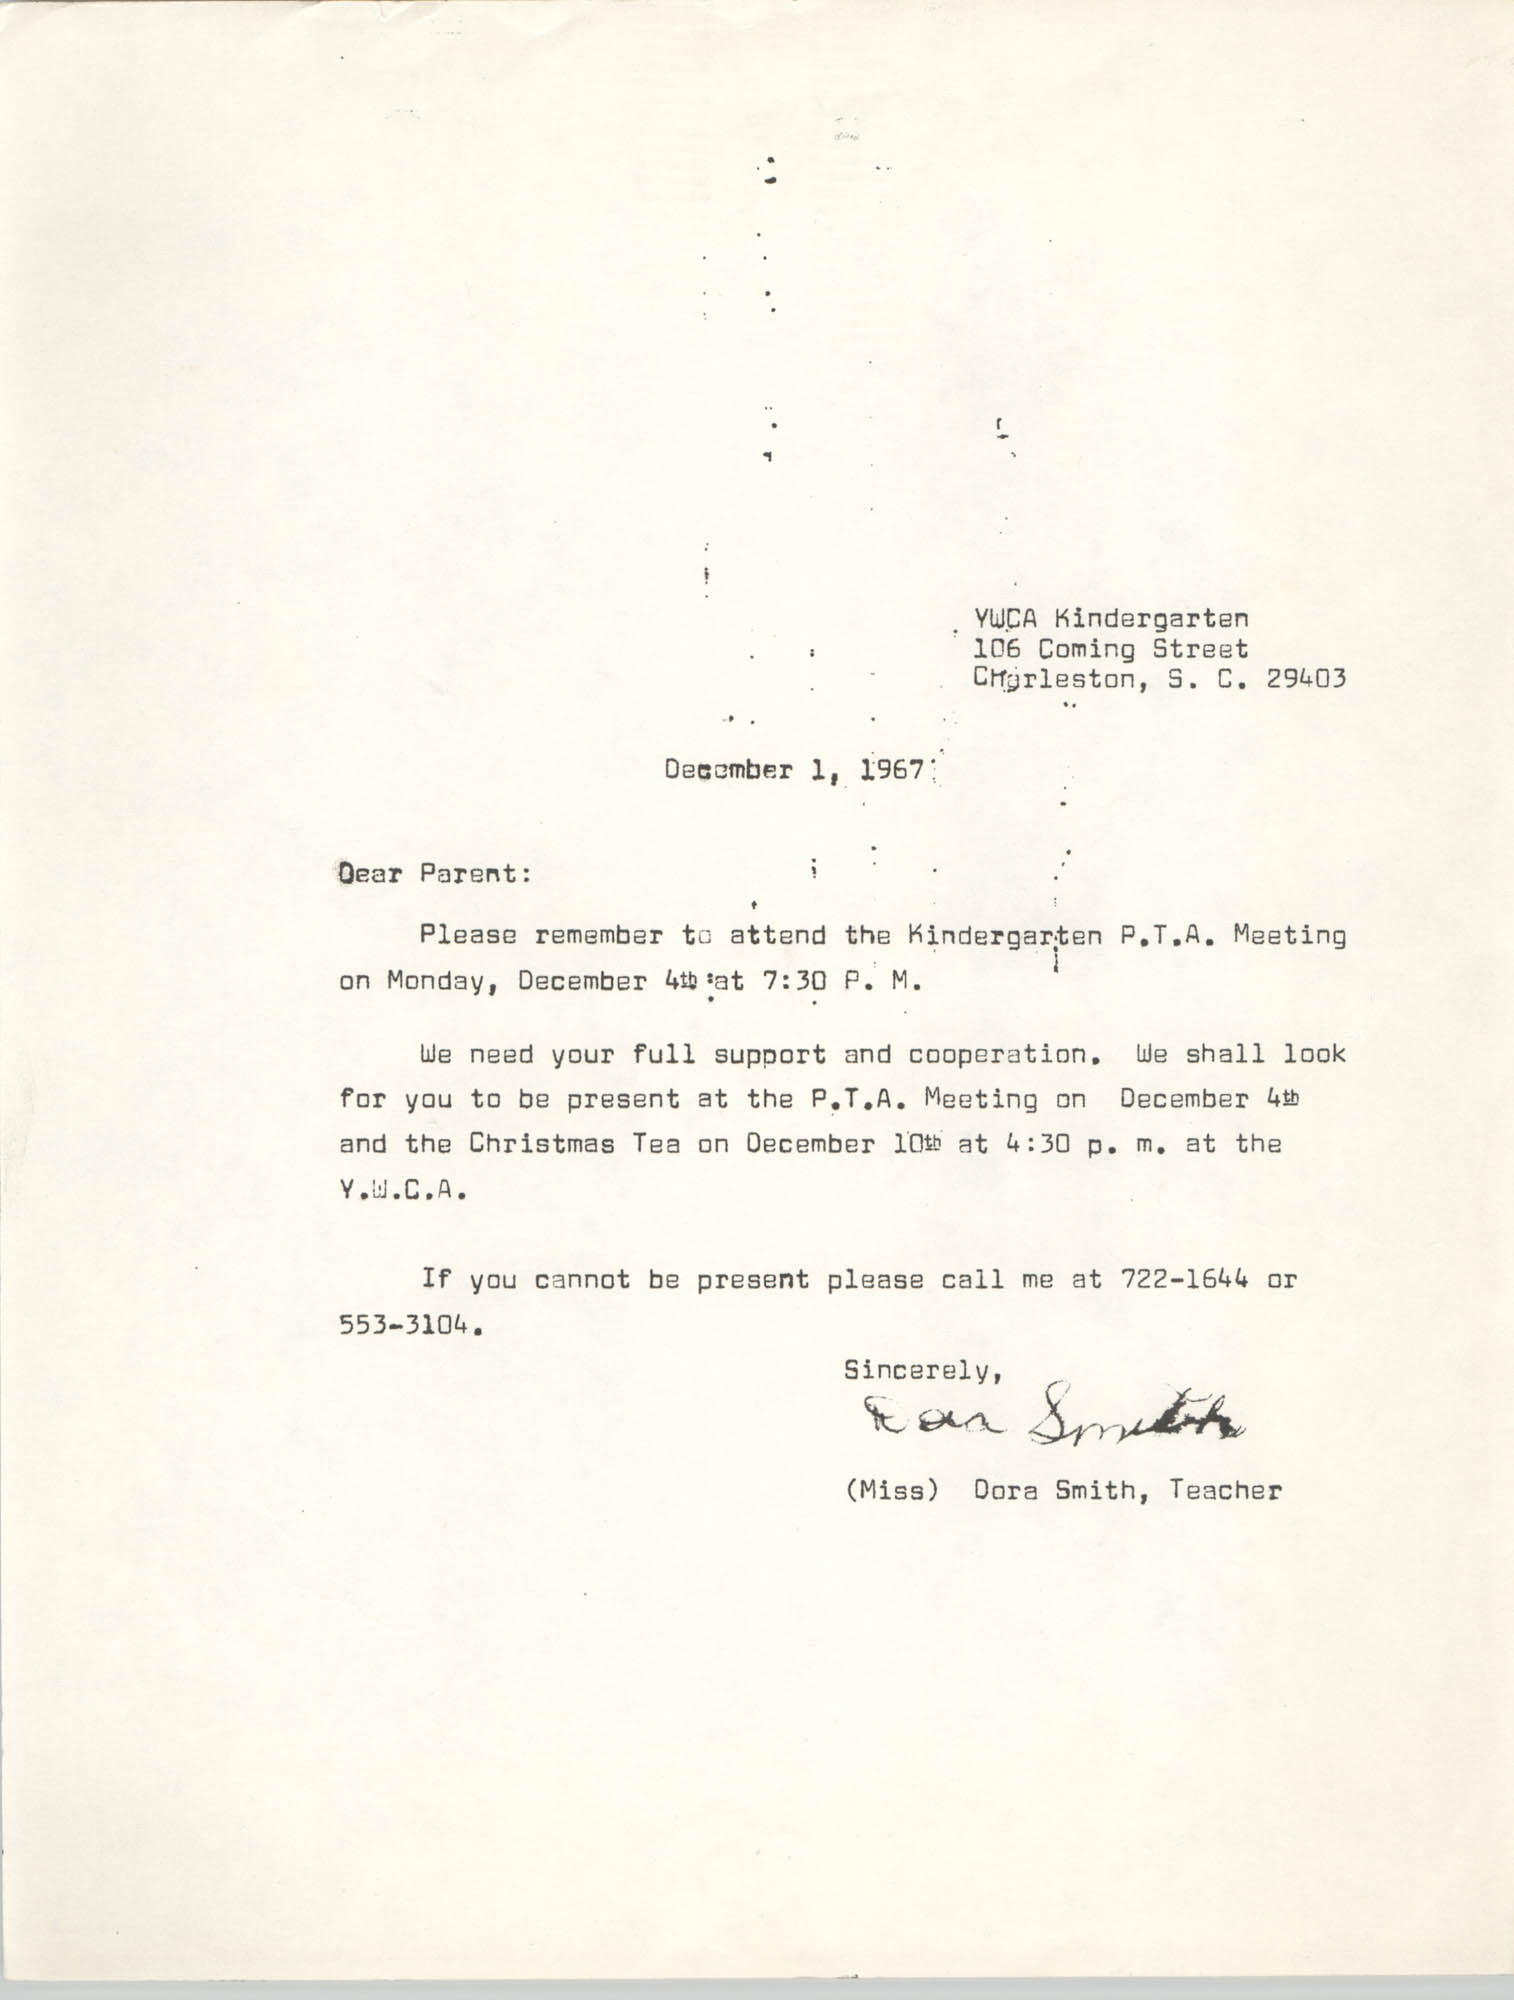 Letter from Dora Smith to Parents, December 1, 1967